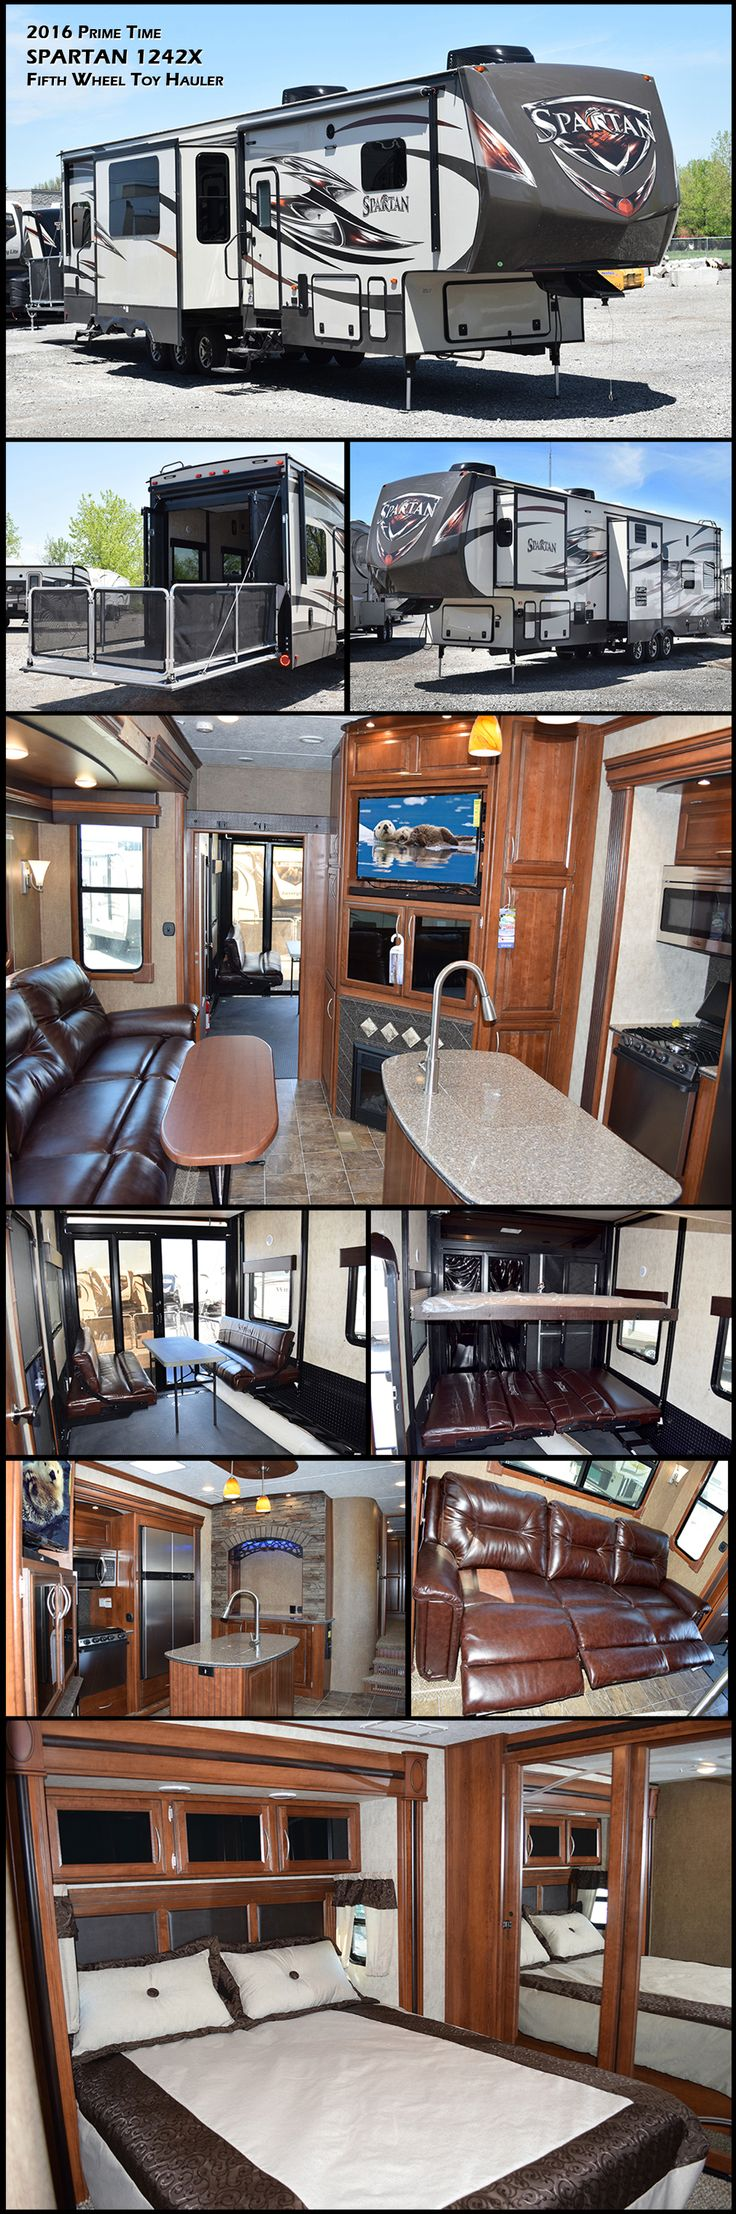 Enjoy this luxurious Fifth Wheel Toy-Hauler with its cozy electric fireplace as your family kicks back and relaxes in the three-piece reclining sectional sofa in the main living area. You can bring along friends too as there is a nice size loft above the garage for additional sleeping space.